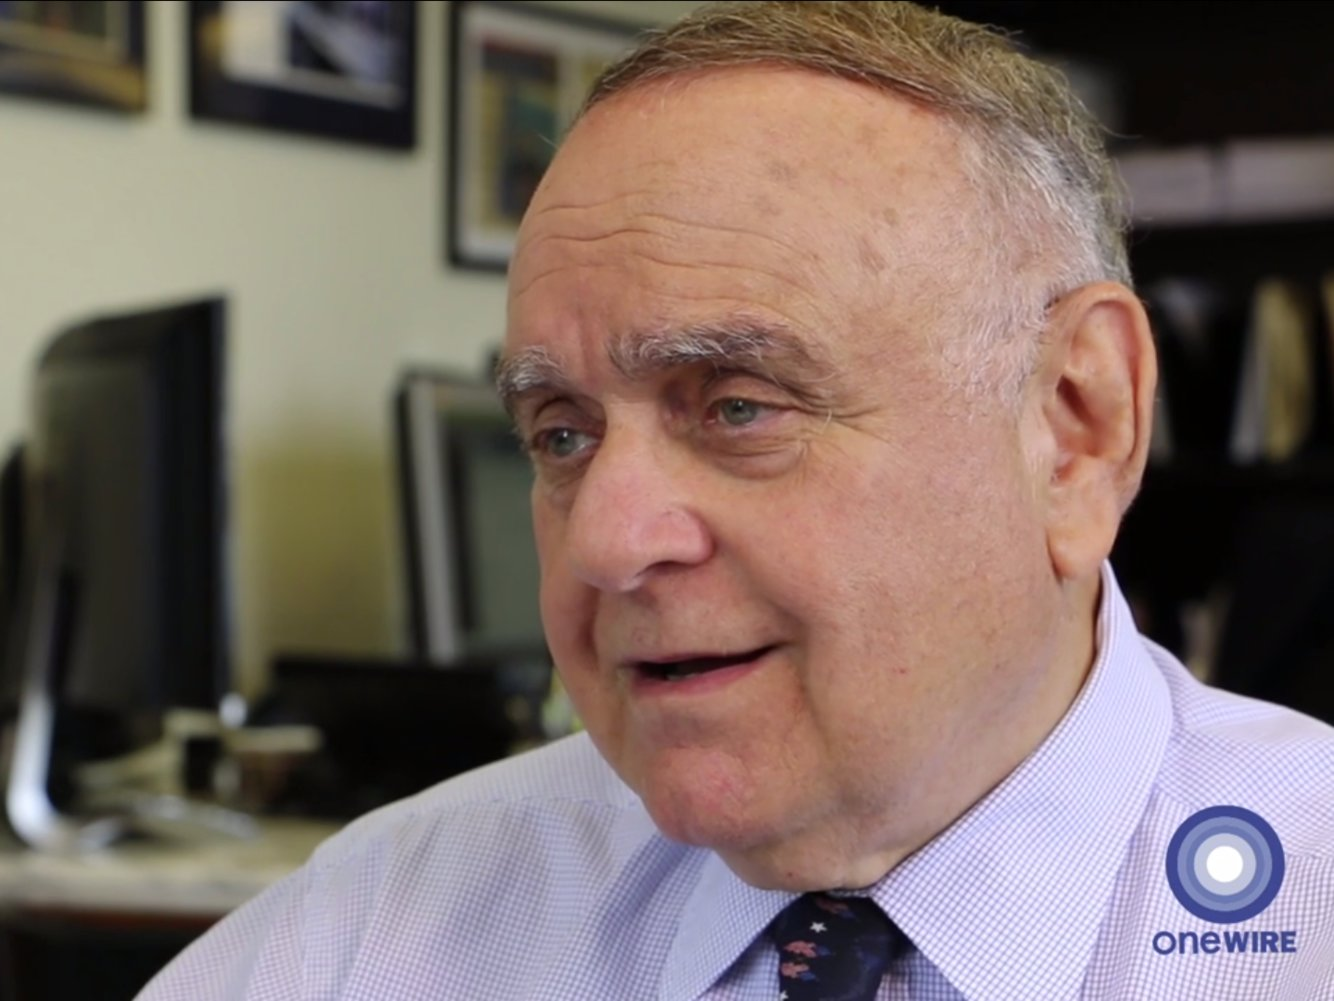 Billionaire Leon Cooperman says the rise of passive investing 'scares the hell' out of him because it's left the market vulnerable to sharp, unpredictable sell-offs